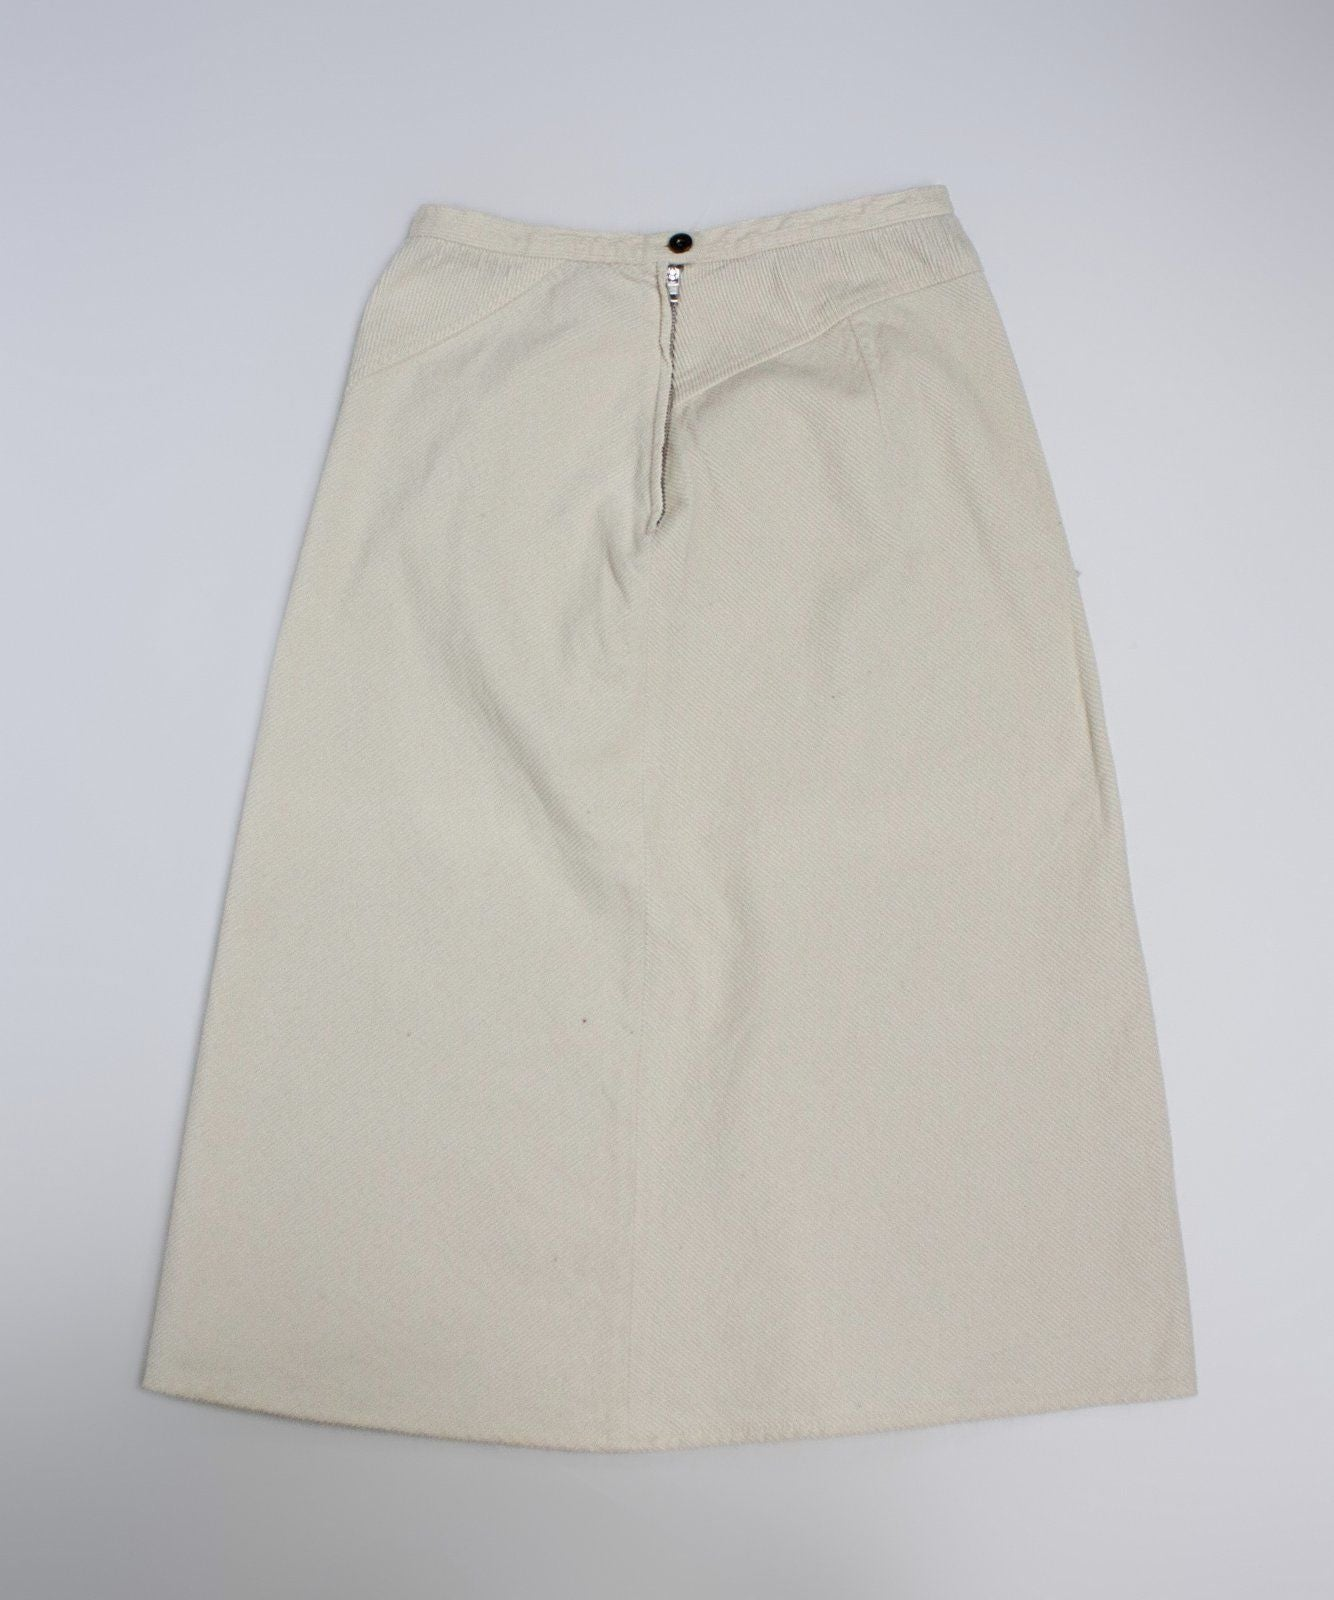 MAX MARA Weekend Cream White Corduroy A-line Skirt US 6/UK8/EU 36 - secondfirst